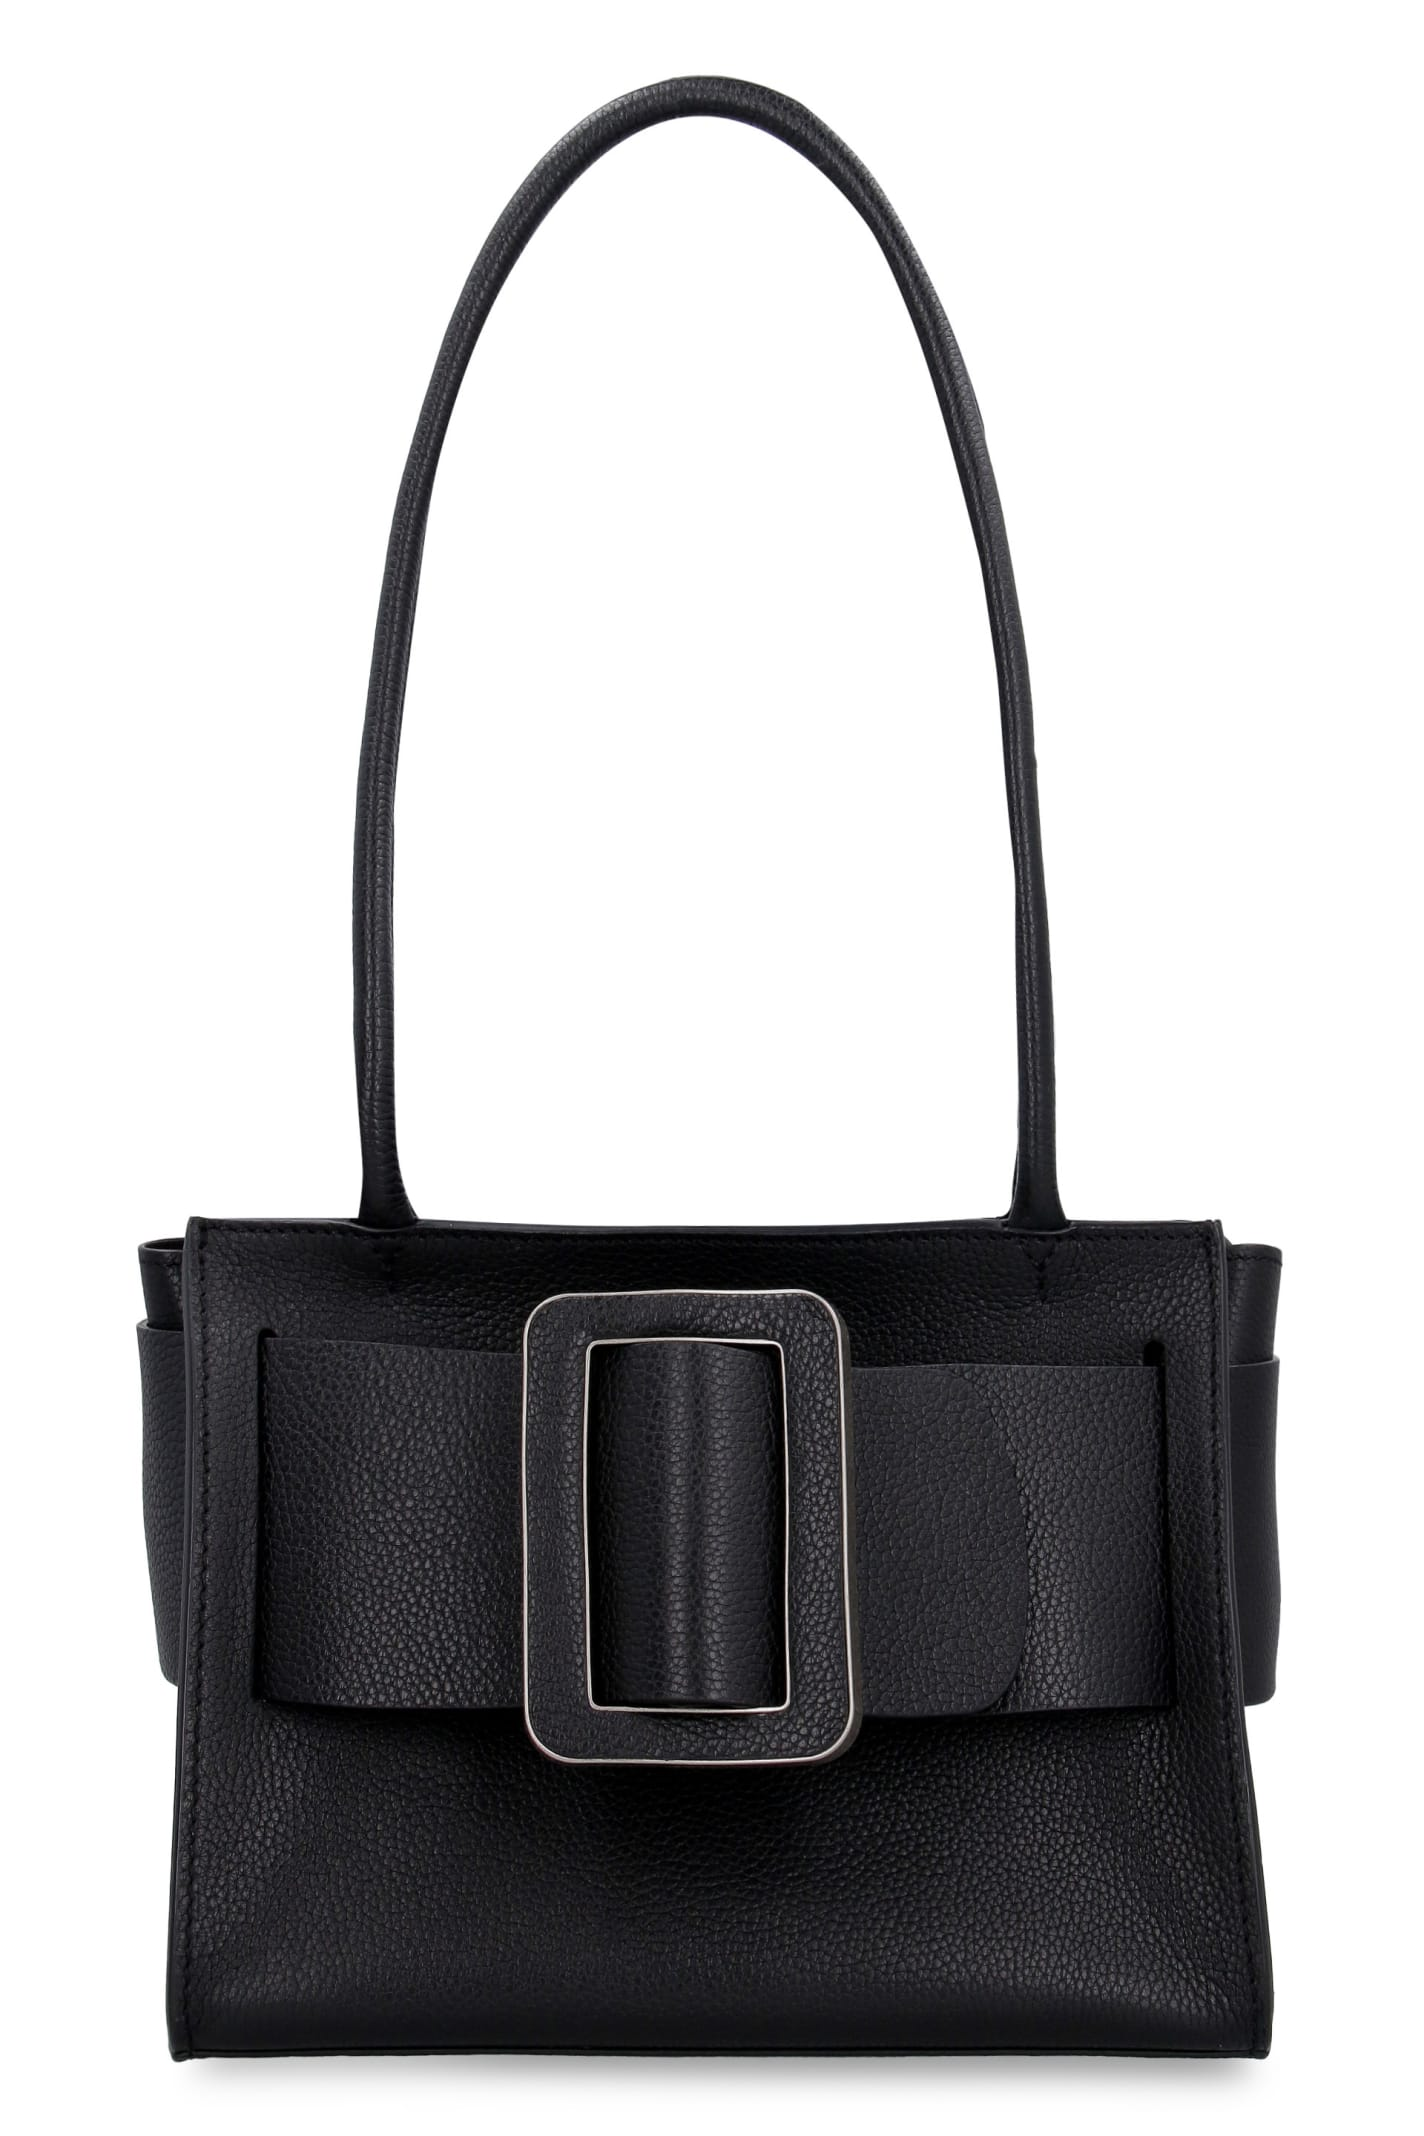 Bobby 23 Soft Pebbled Leather Tote